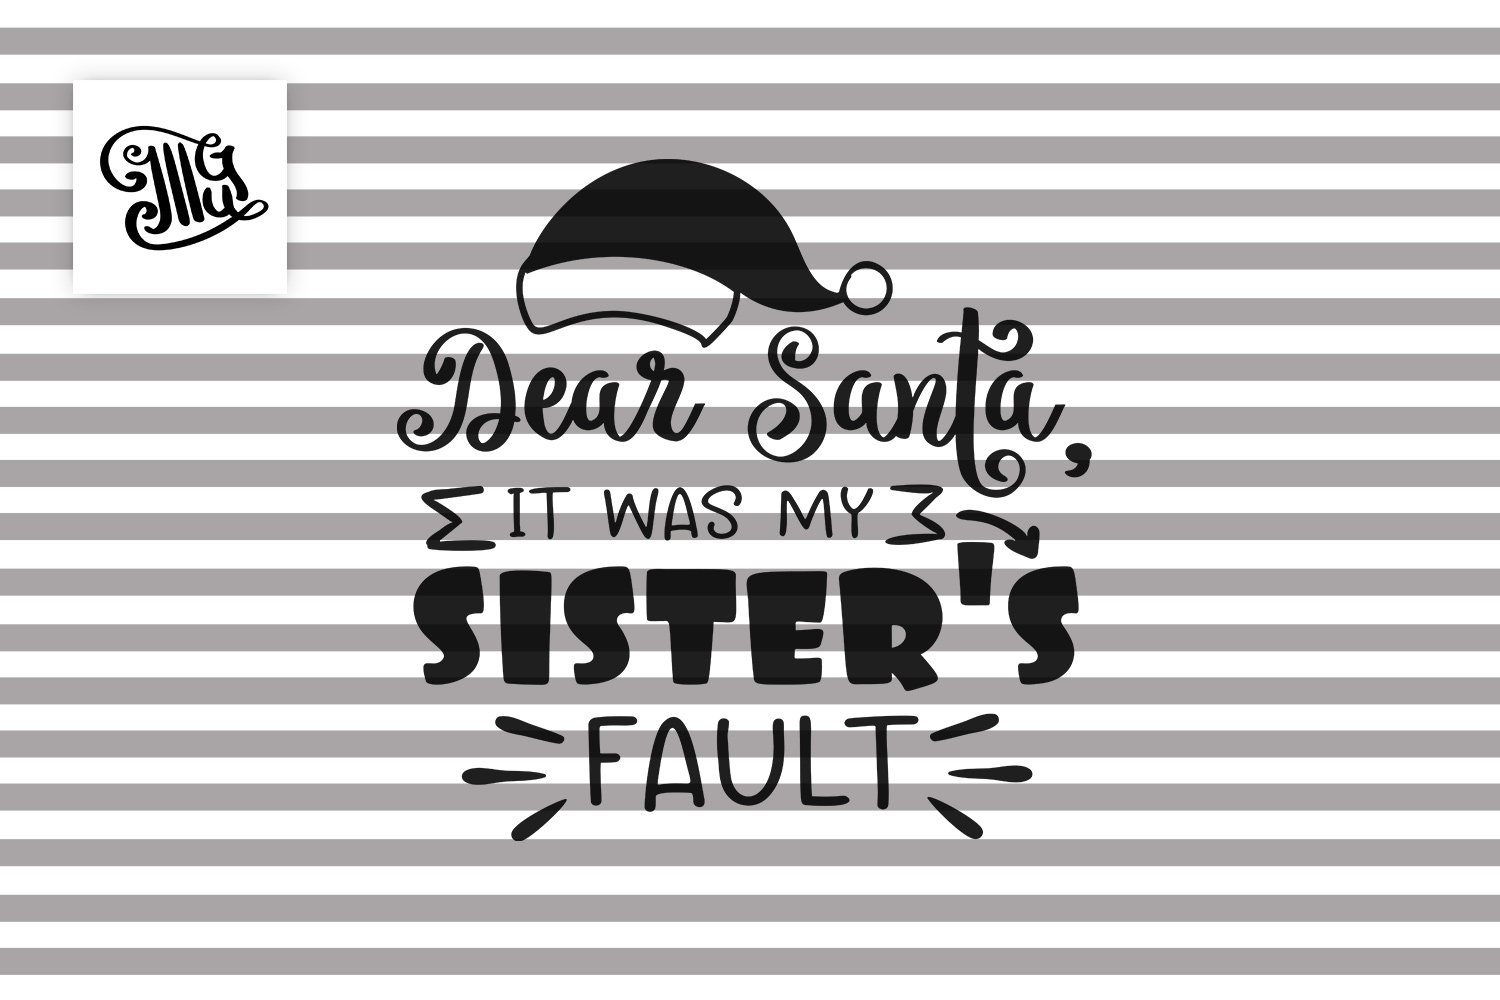 Dear Santa it was my sister's fault - Christmas kids example image 2